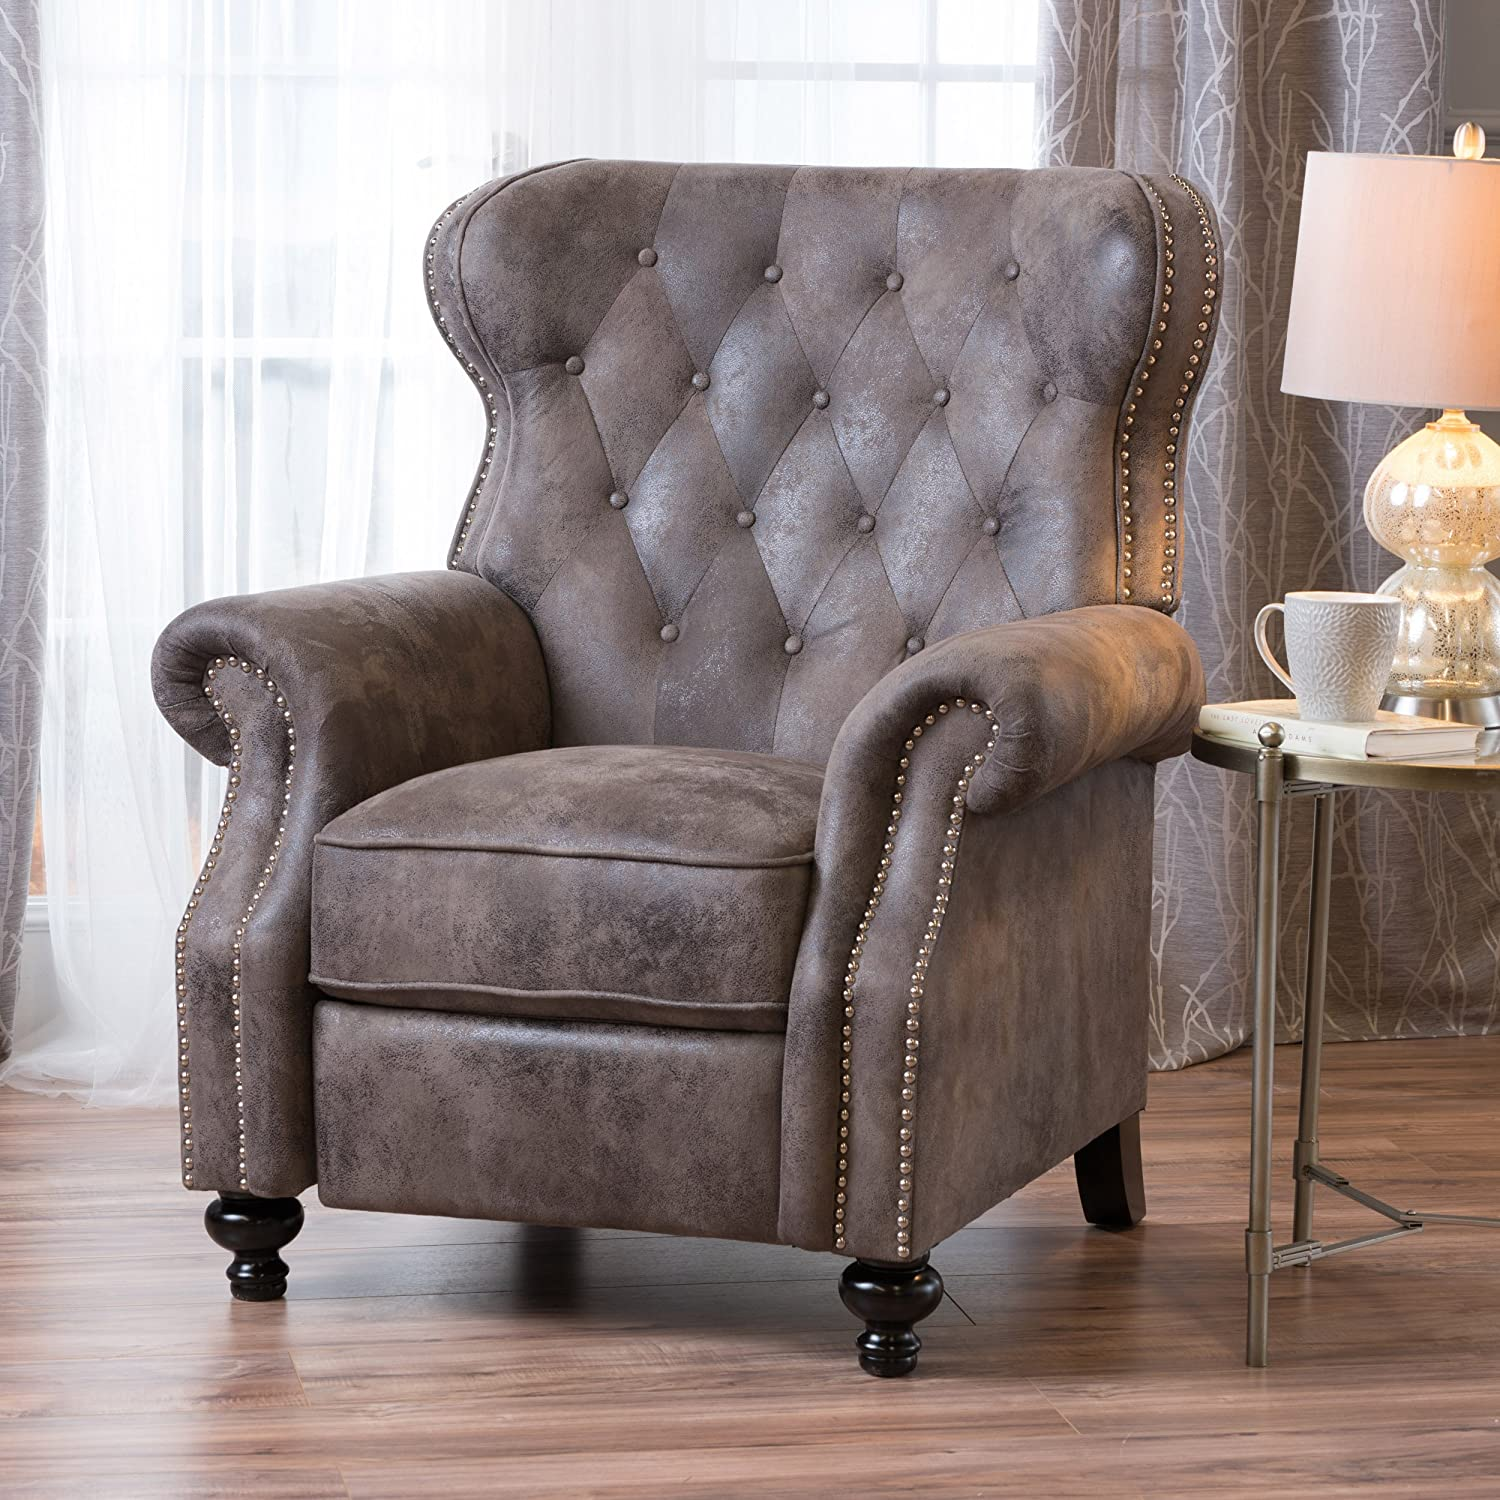 GDF Waldo Tufted Wingback Recliner Chair